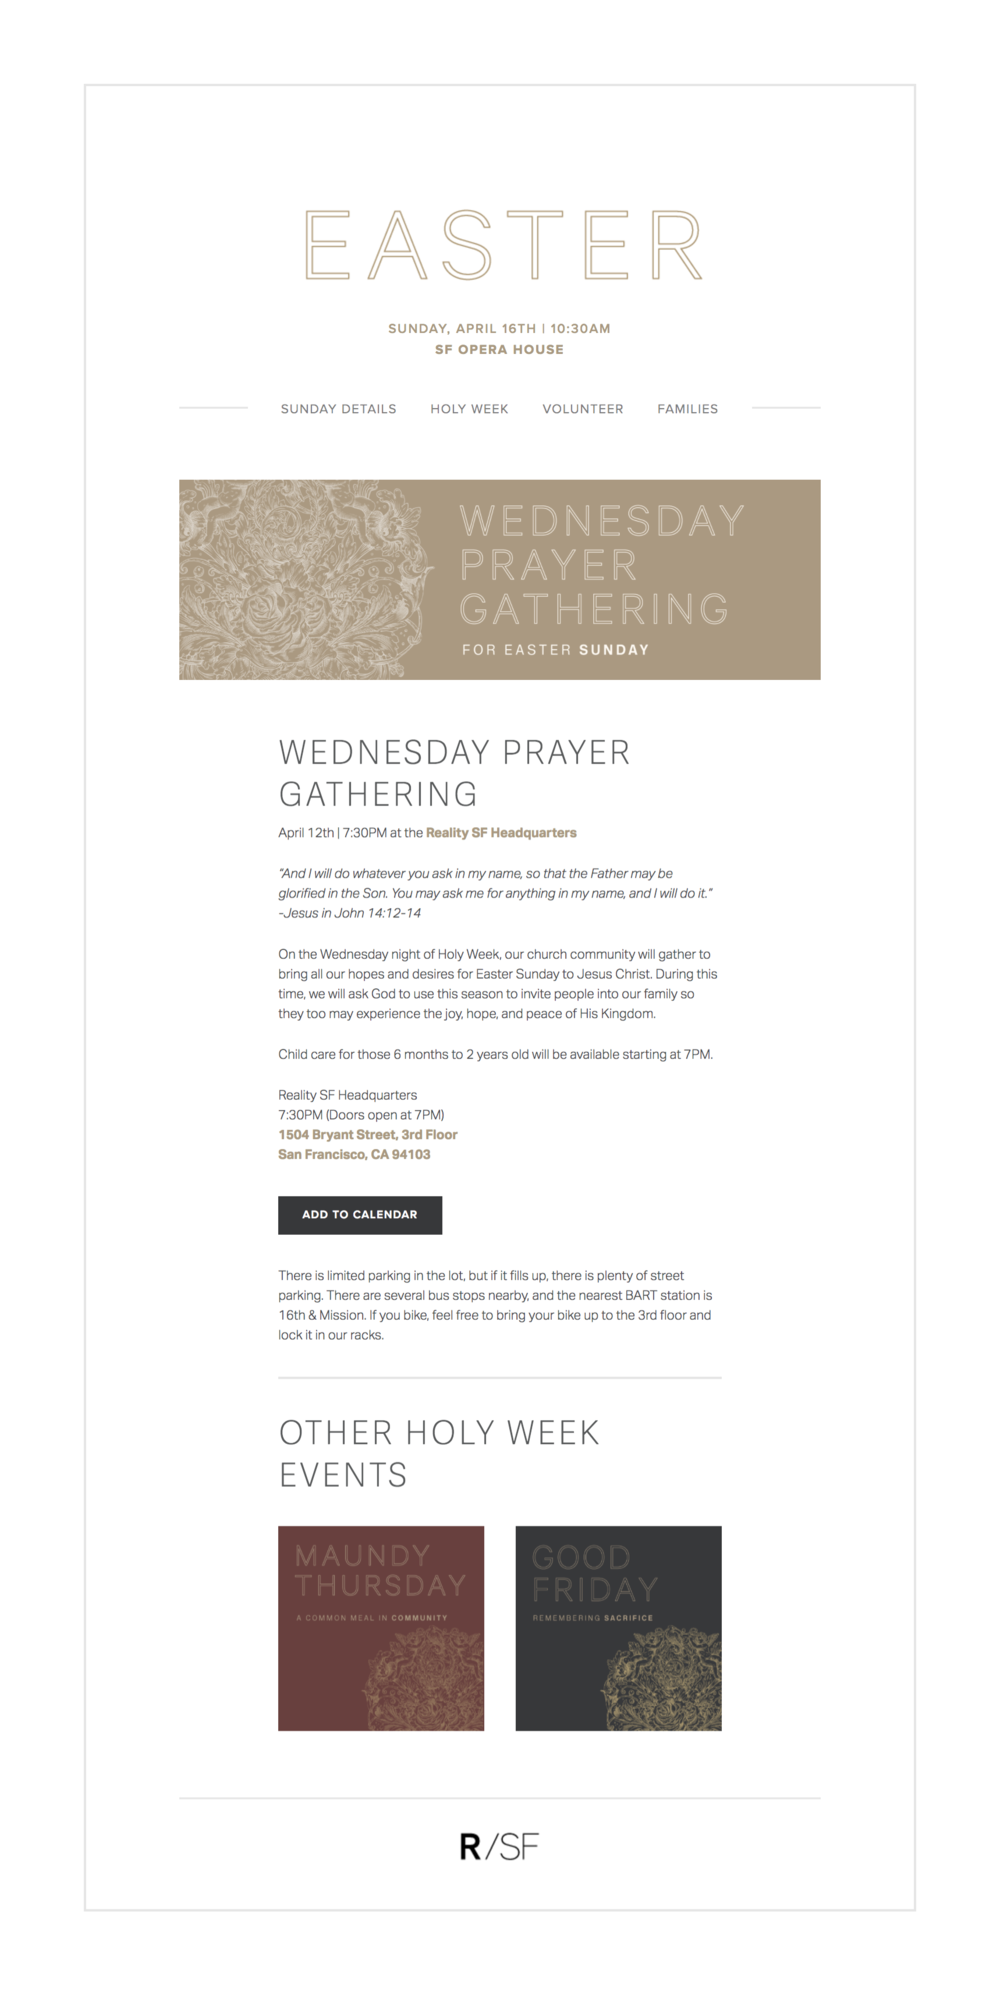 screencapture-easter-realitysf-wednesday-prayer-gathering-1502586293571.png